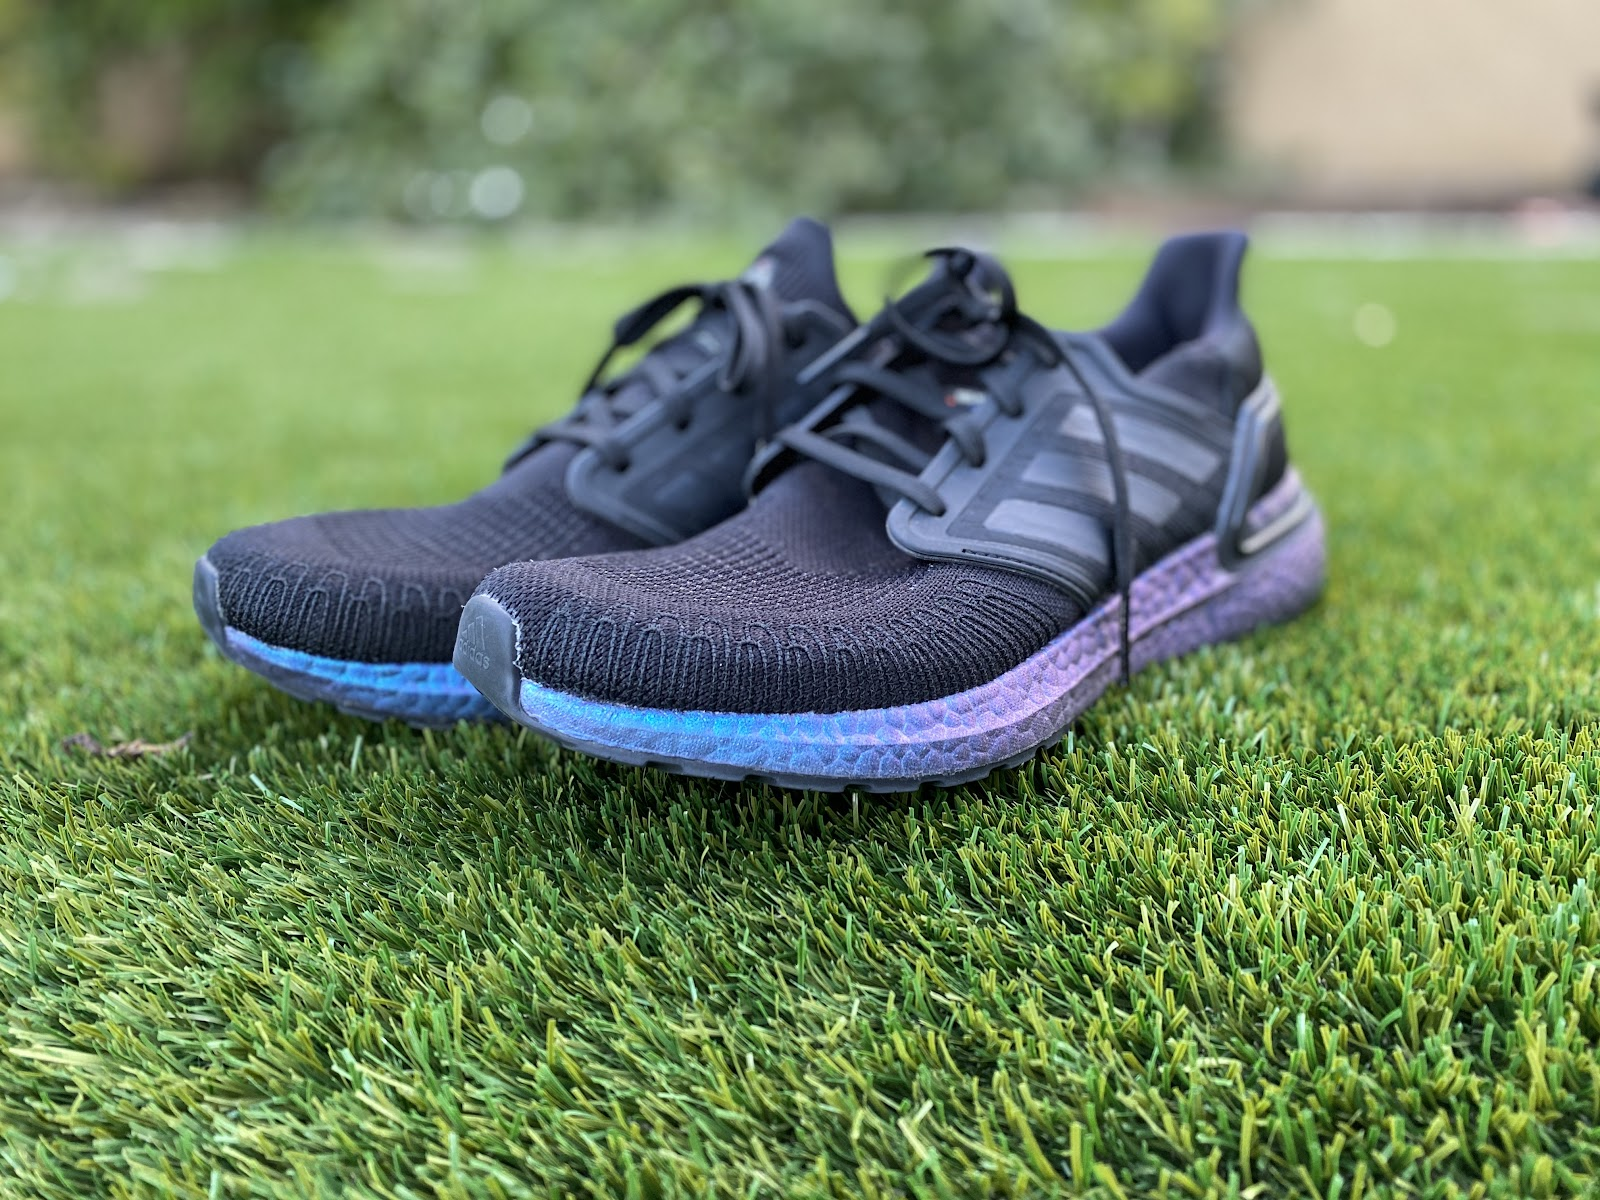 Boutique en ligne pensamientos sobre estilo clásico Road Trail Run: adidas Ultra Boost 20 Review - International Space Station  Approved, Earth's Gravity proves too much to handle